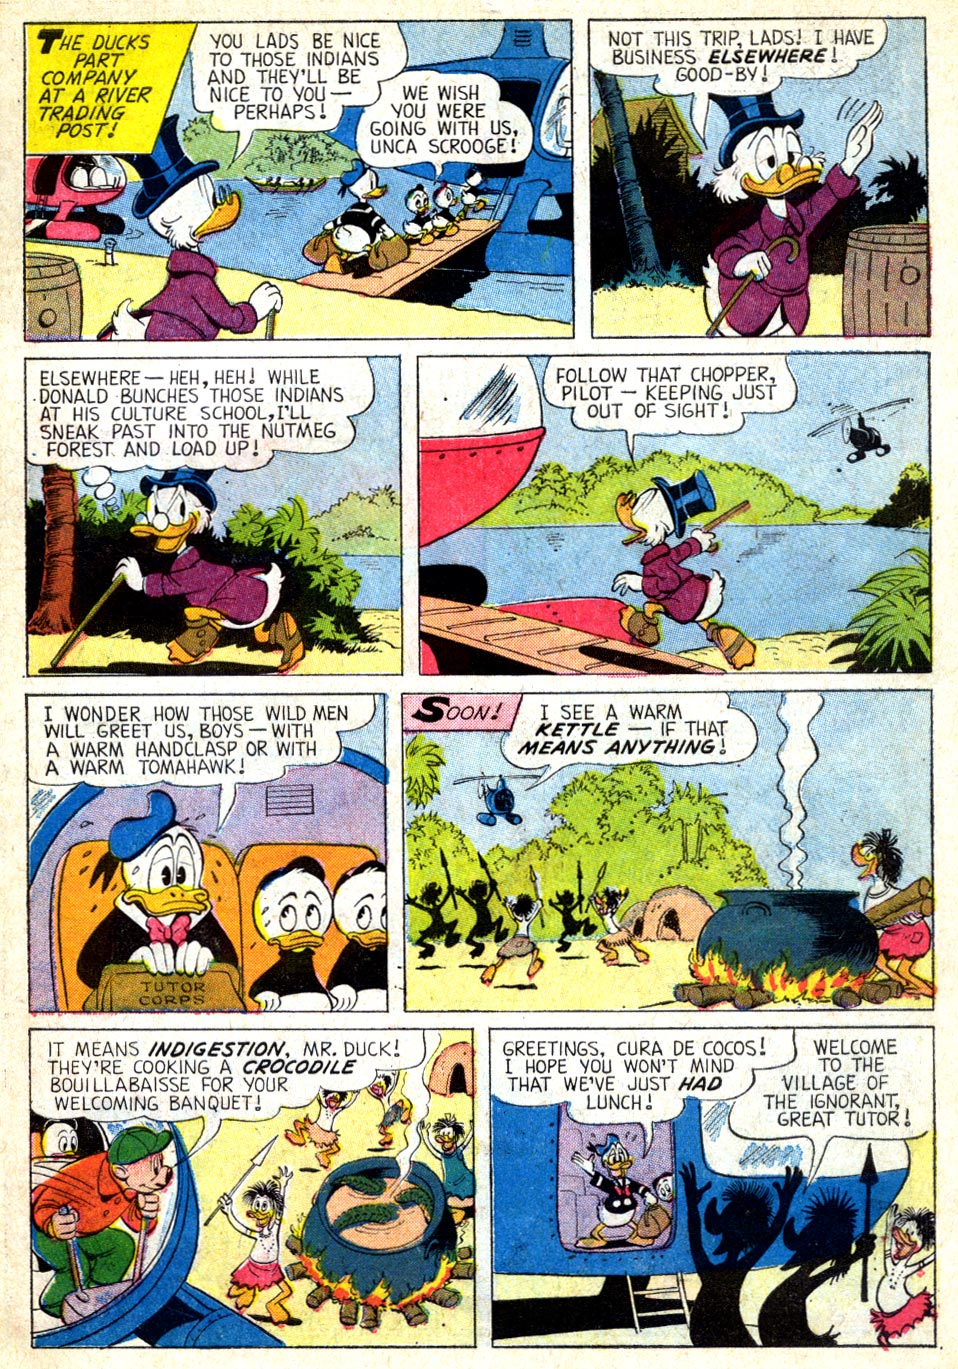 inefree.com/uncle-scroog #366 - English 7